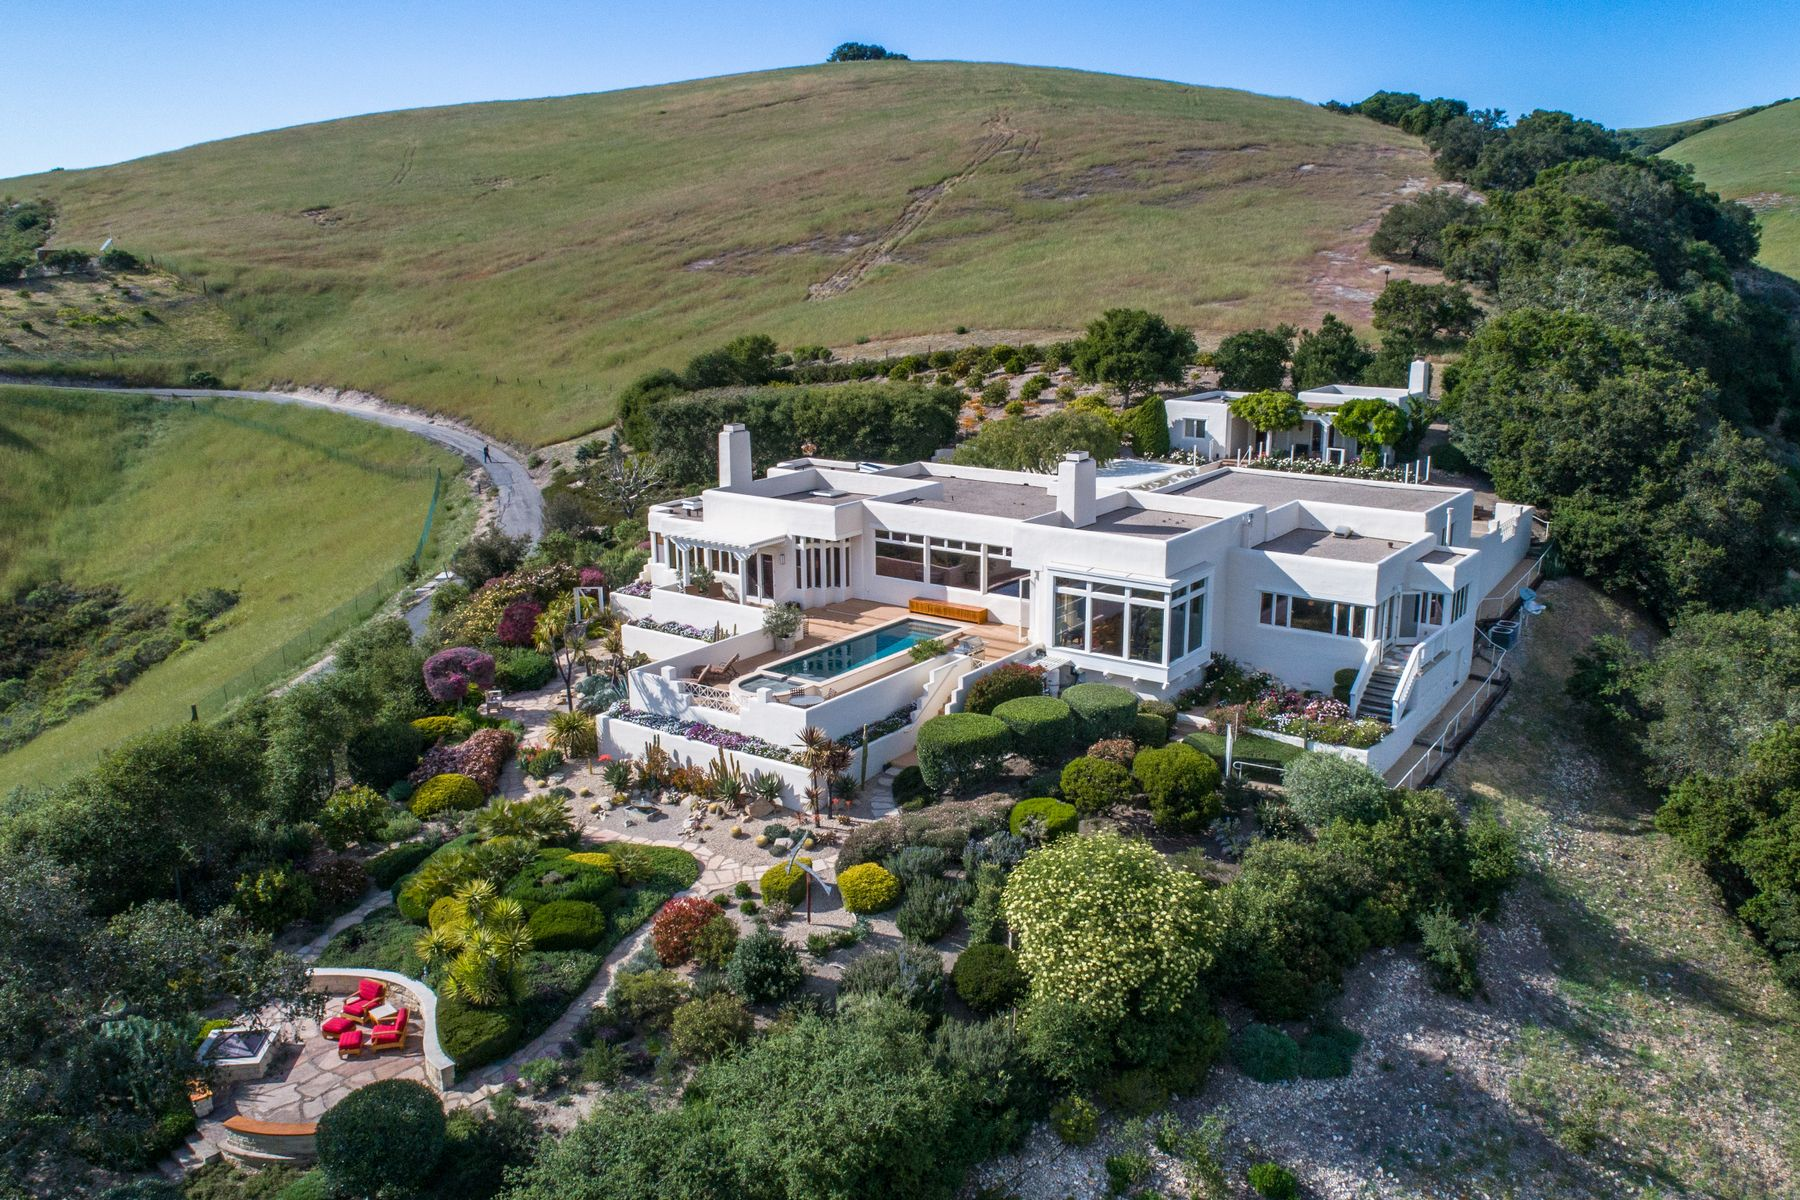 Single Family Homes for Sale at Stunning Carmel Valley Estate 6 Oak Meadow Lane Carmel Valley, California 93924 United States